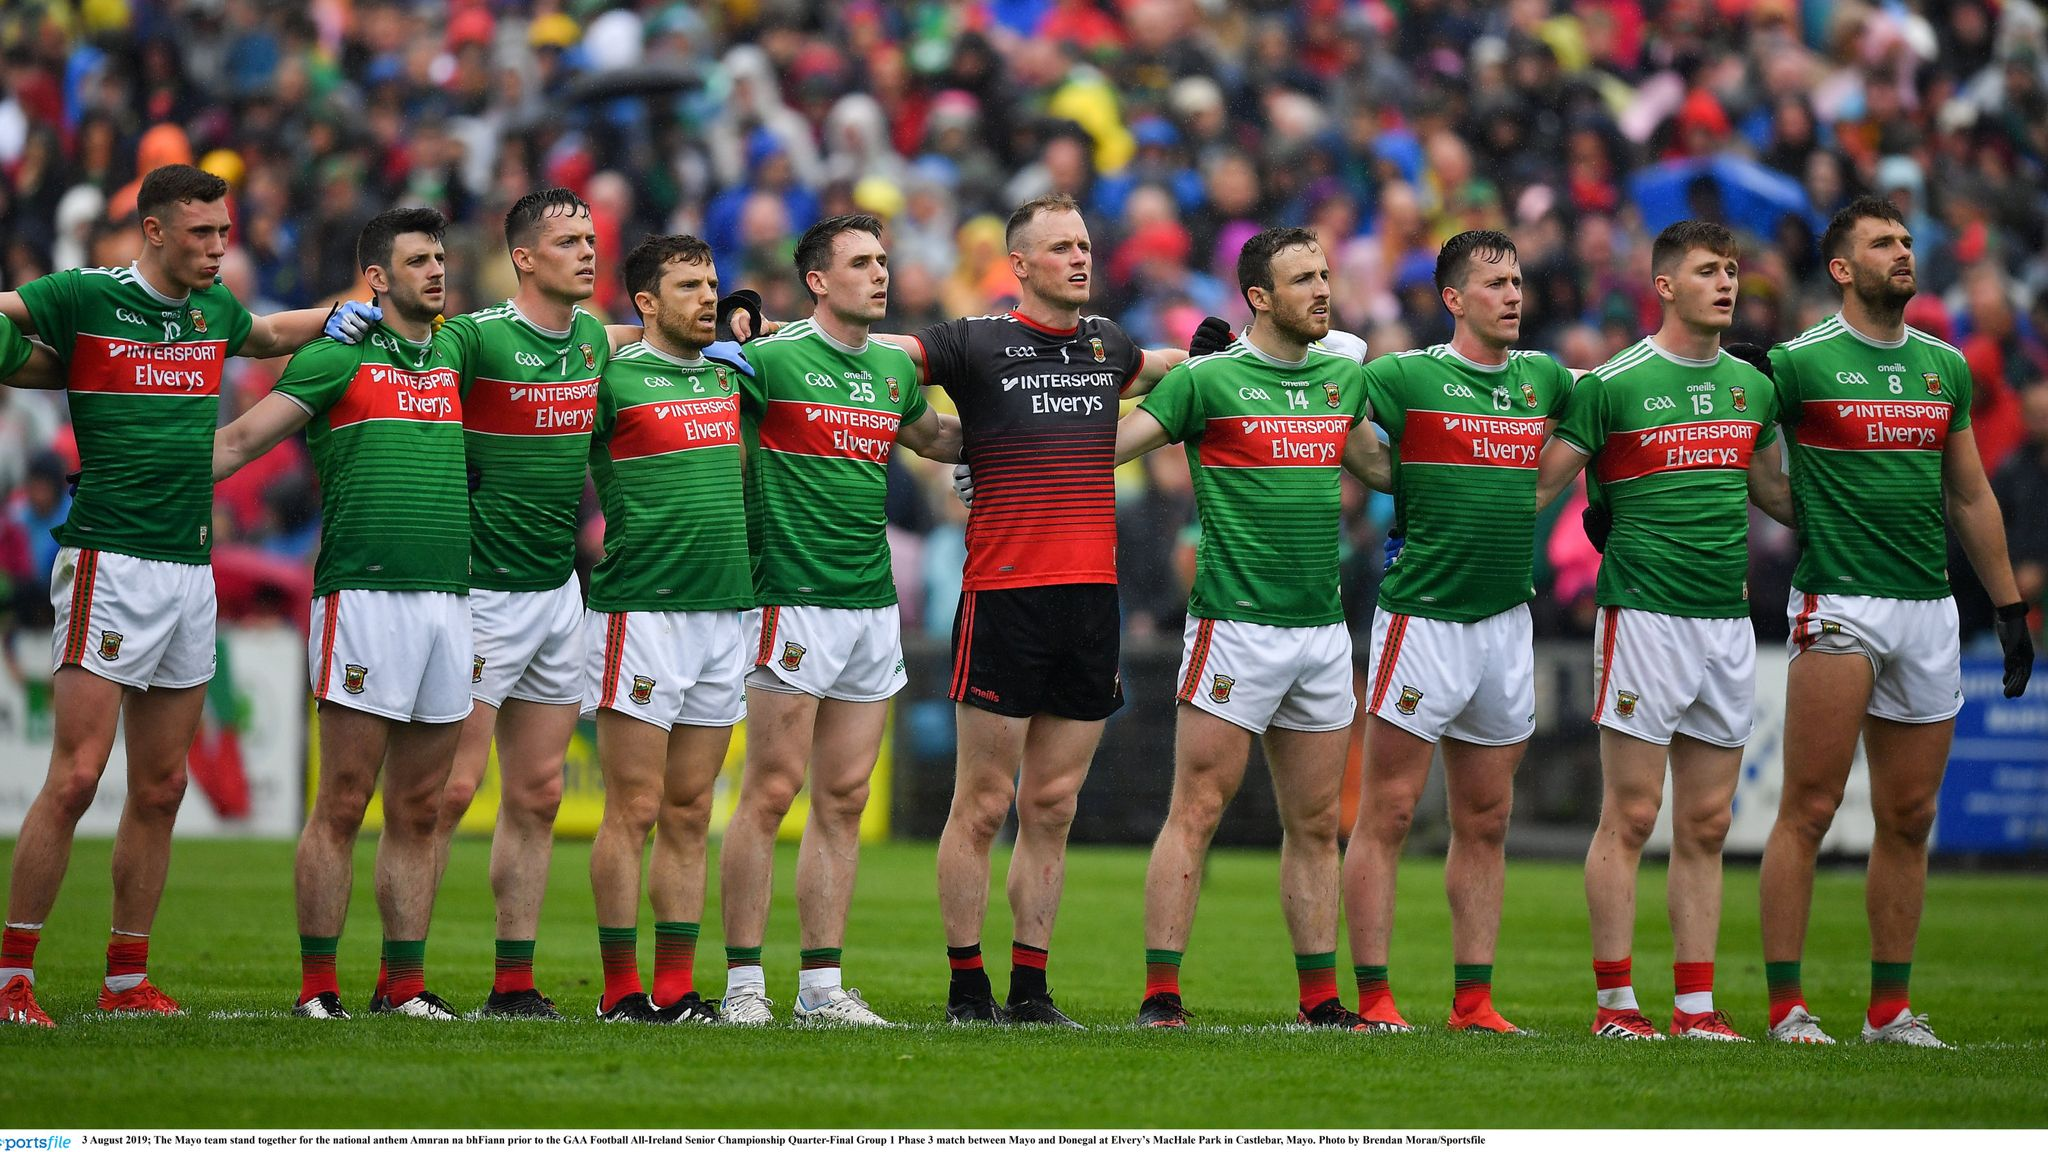 Official Mayo GAA